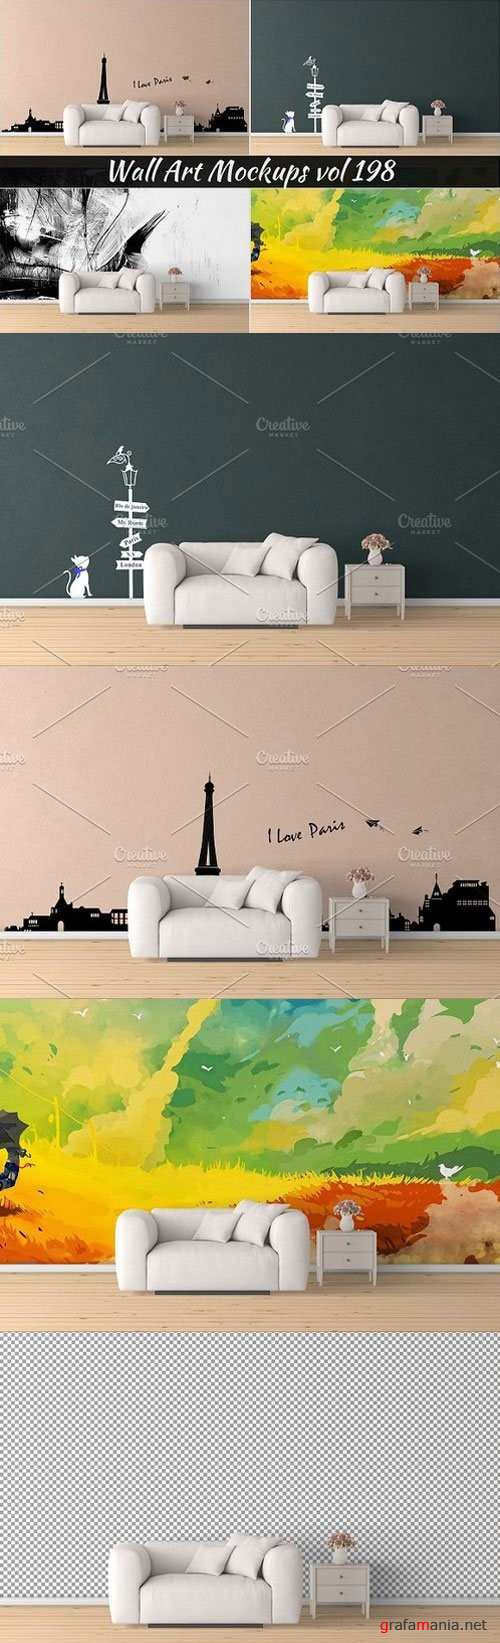 Wall Mockup - Sticker Mockup Vol 198 - 1123632